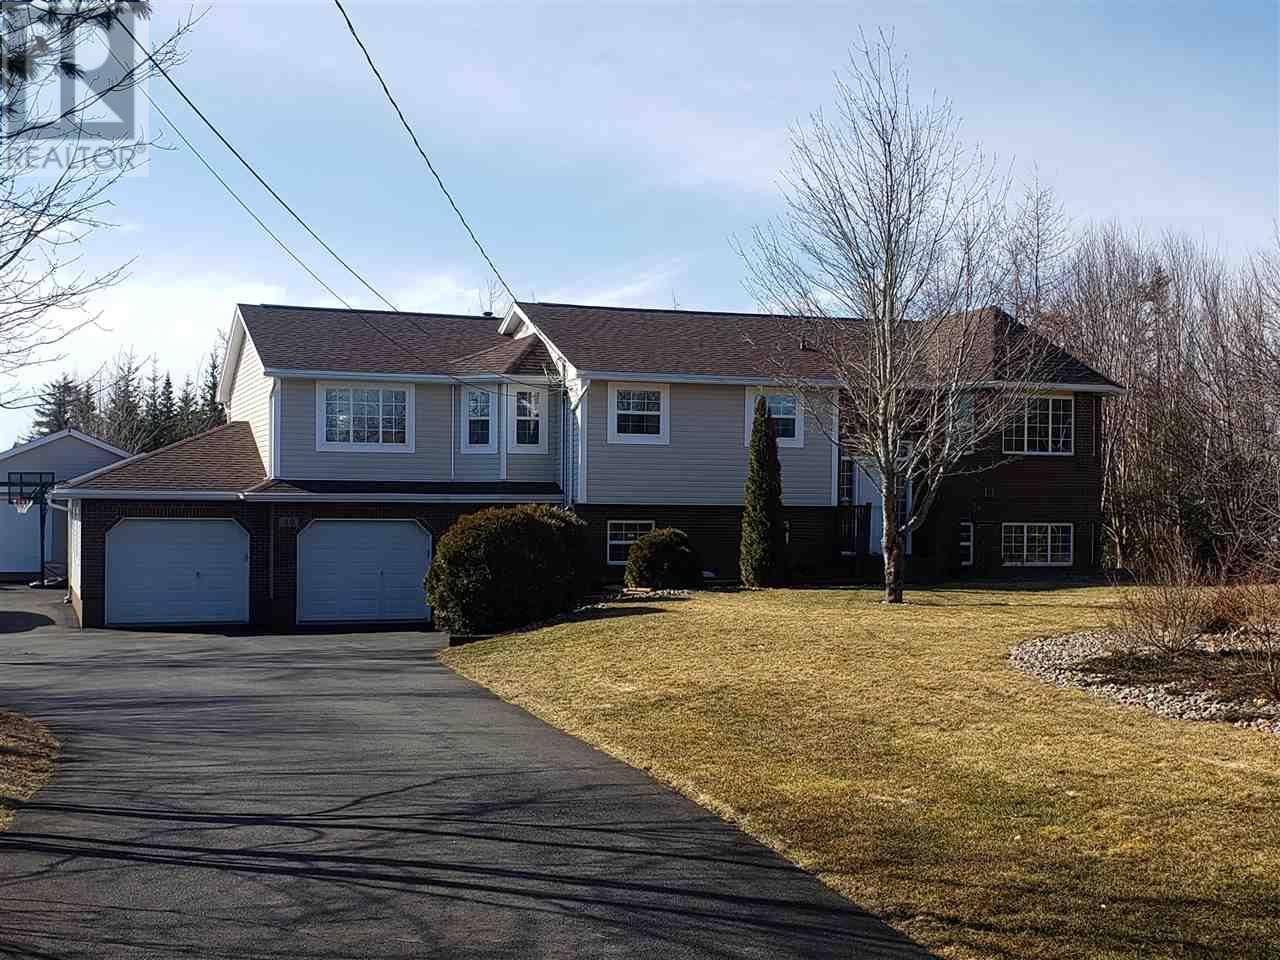 House for sale at 30 Kerry Dr Lawrencetown Nova Scotia - MLS: 202003869